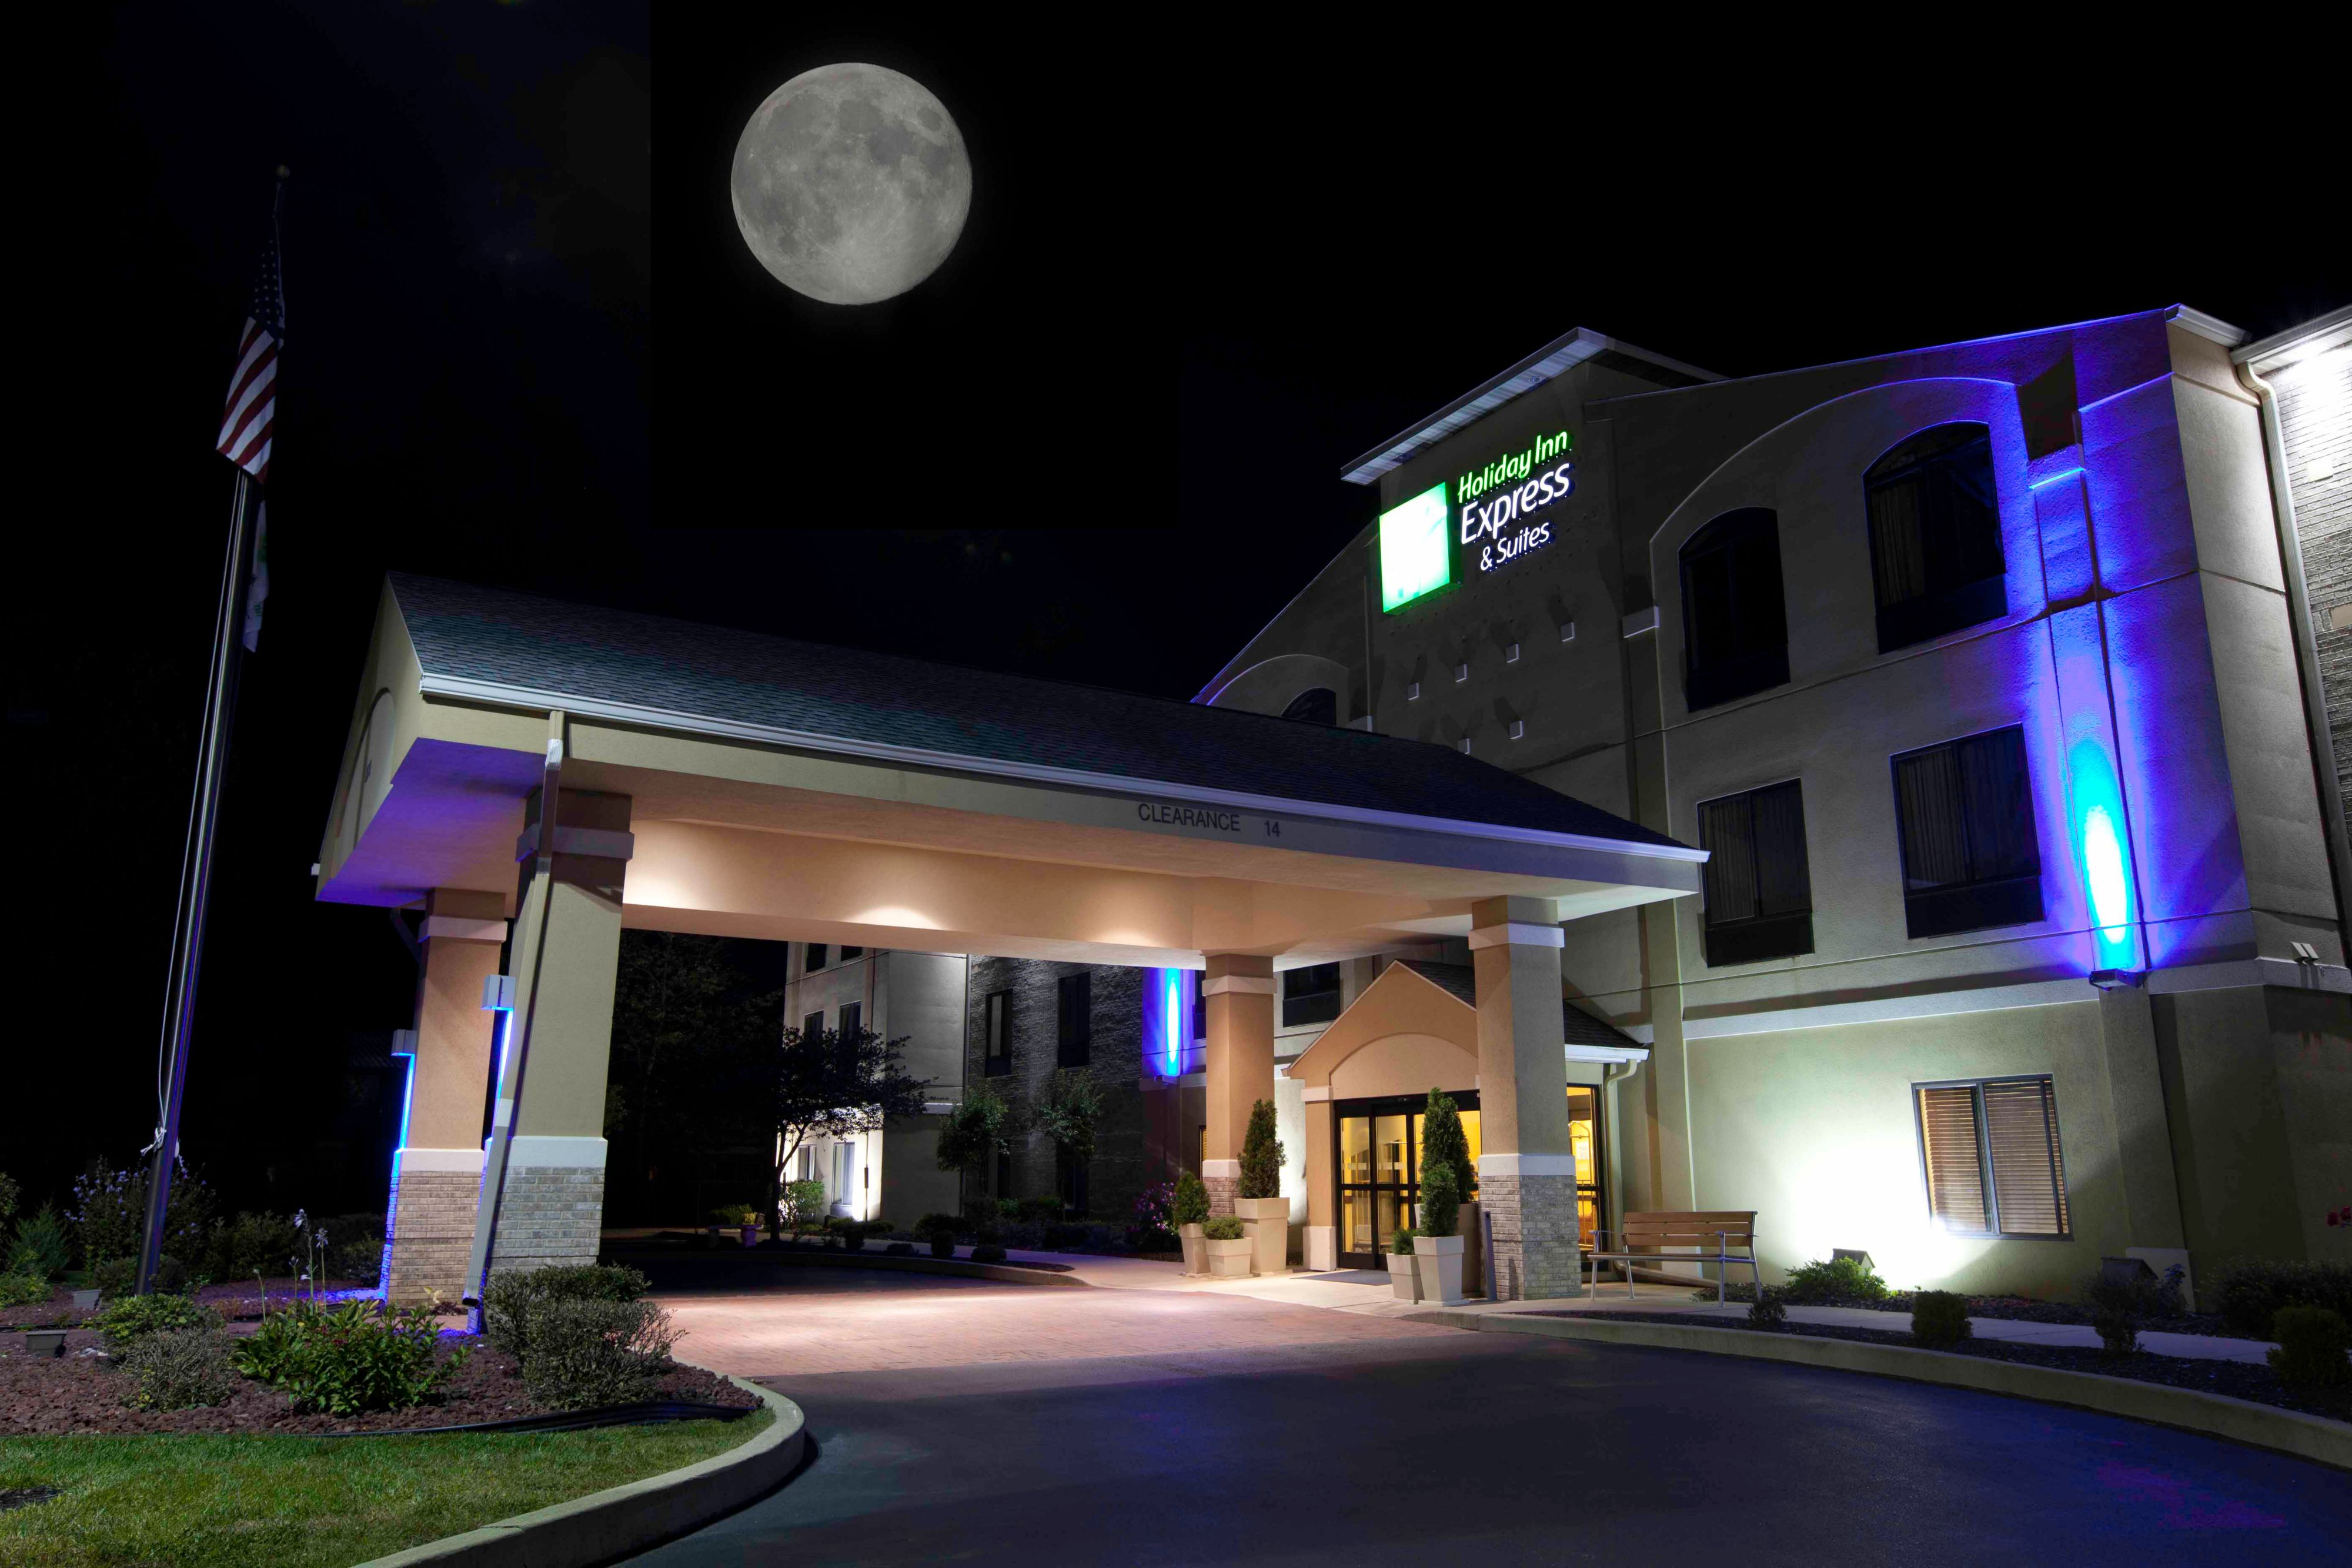 Holiday Inn Express Amp Suites Plant City Plant City